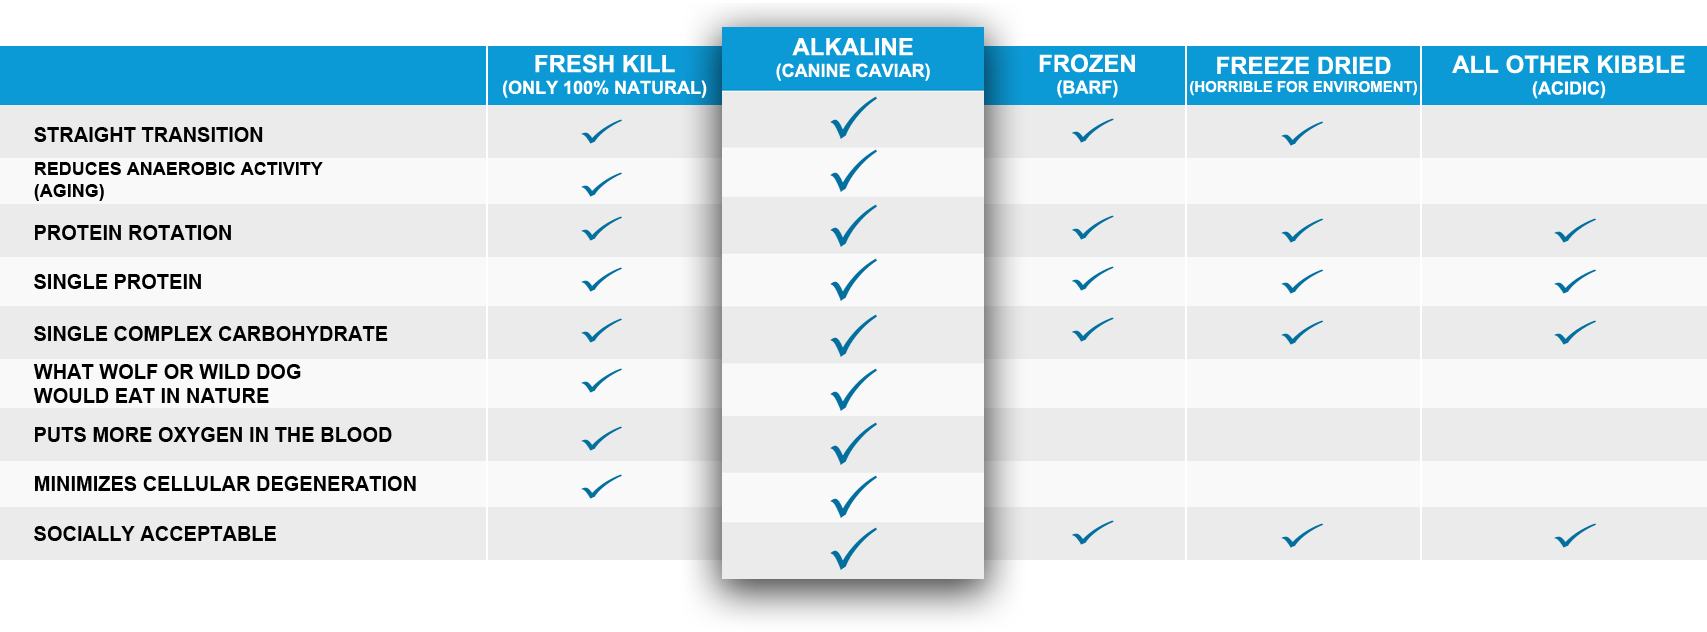 Comparing Canine Caviar to other dog foods, alkaline is superior